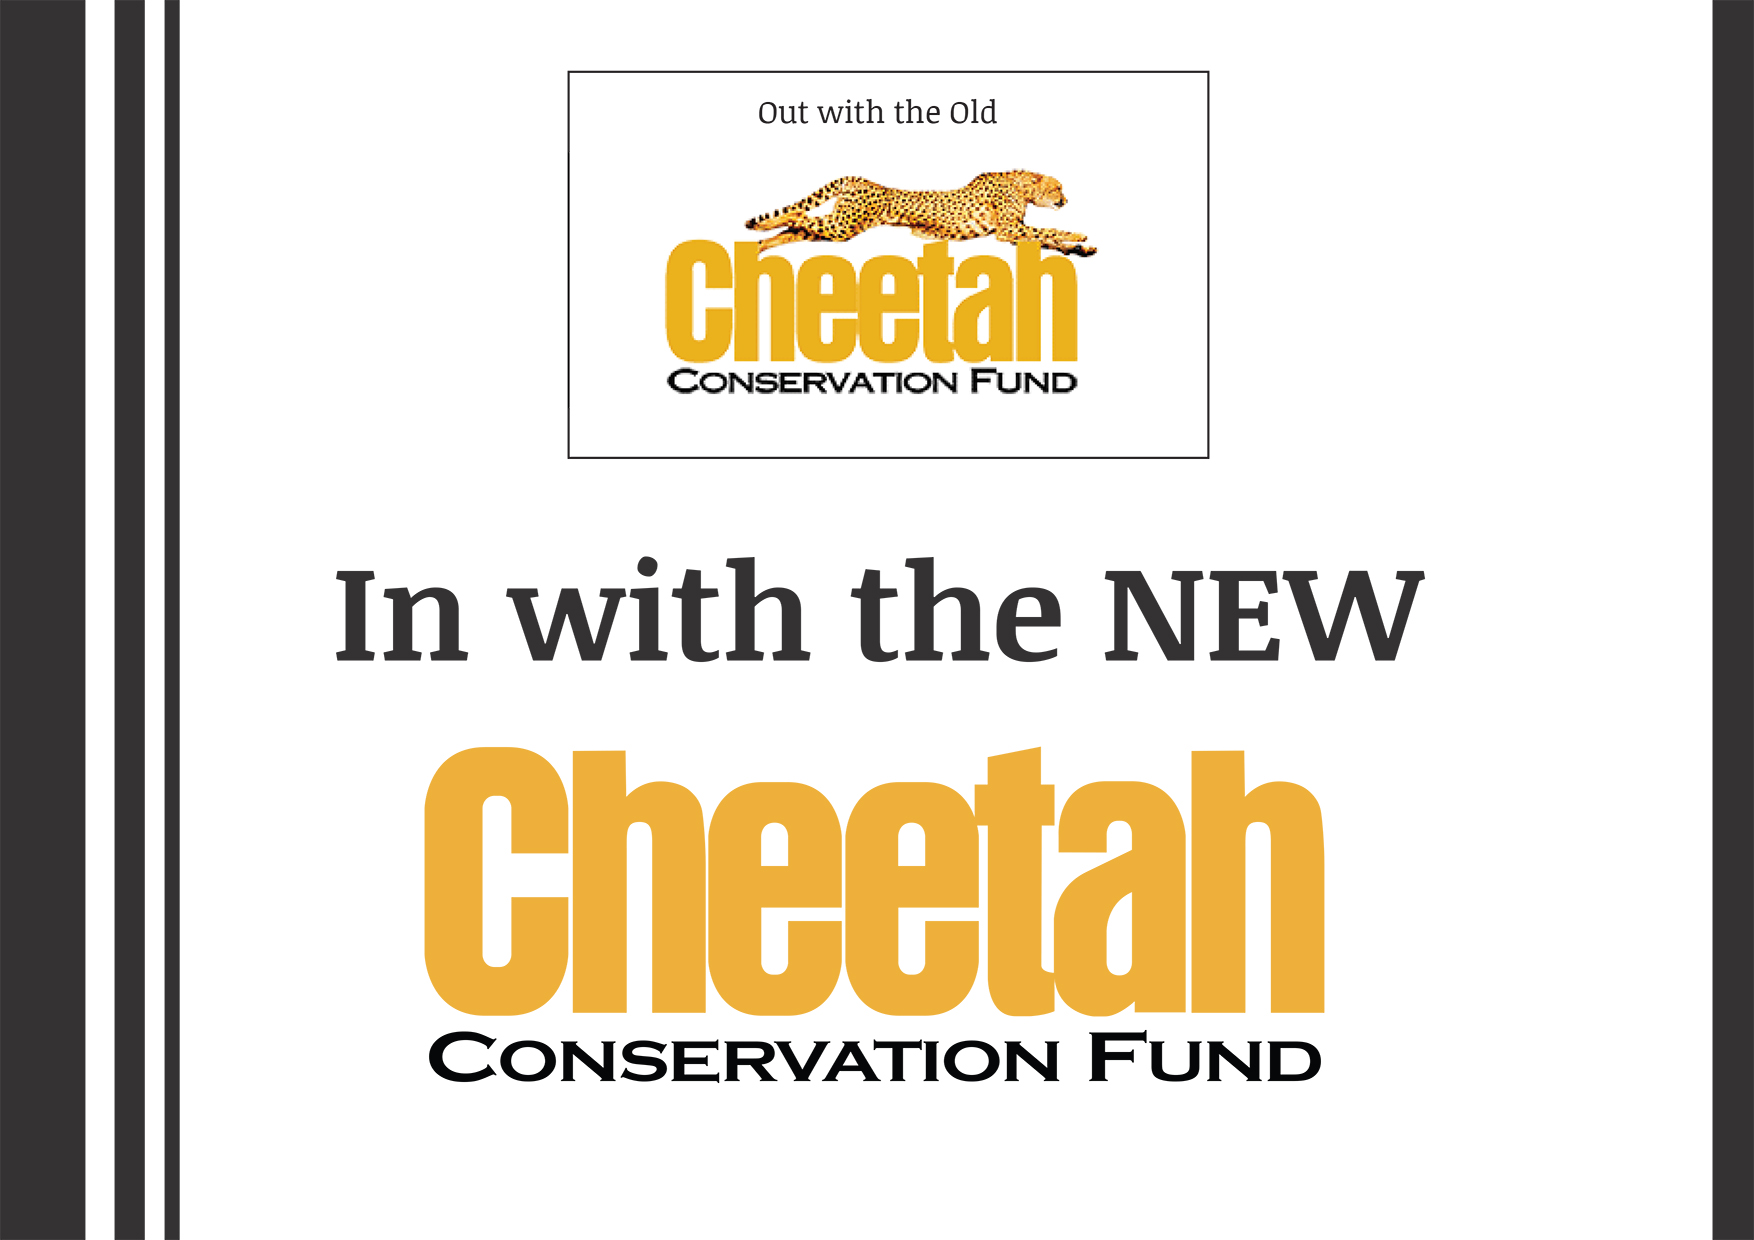 Cheetah Conservation Fund Brand Book (1)-4.jpg